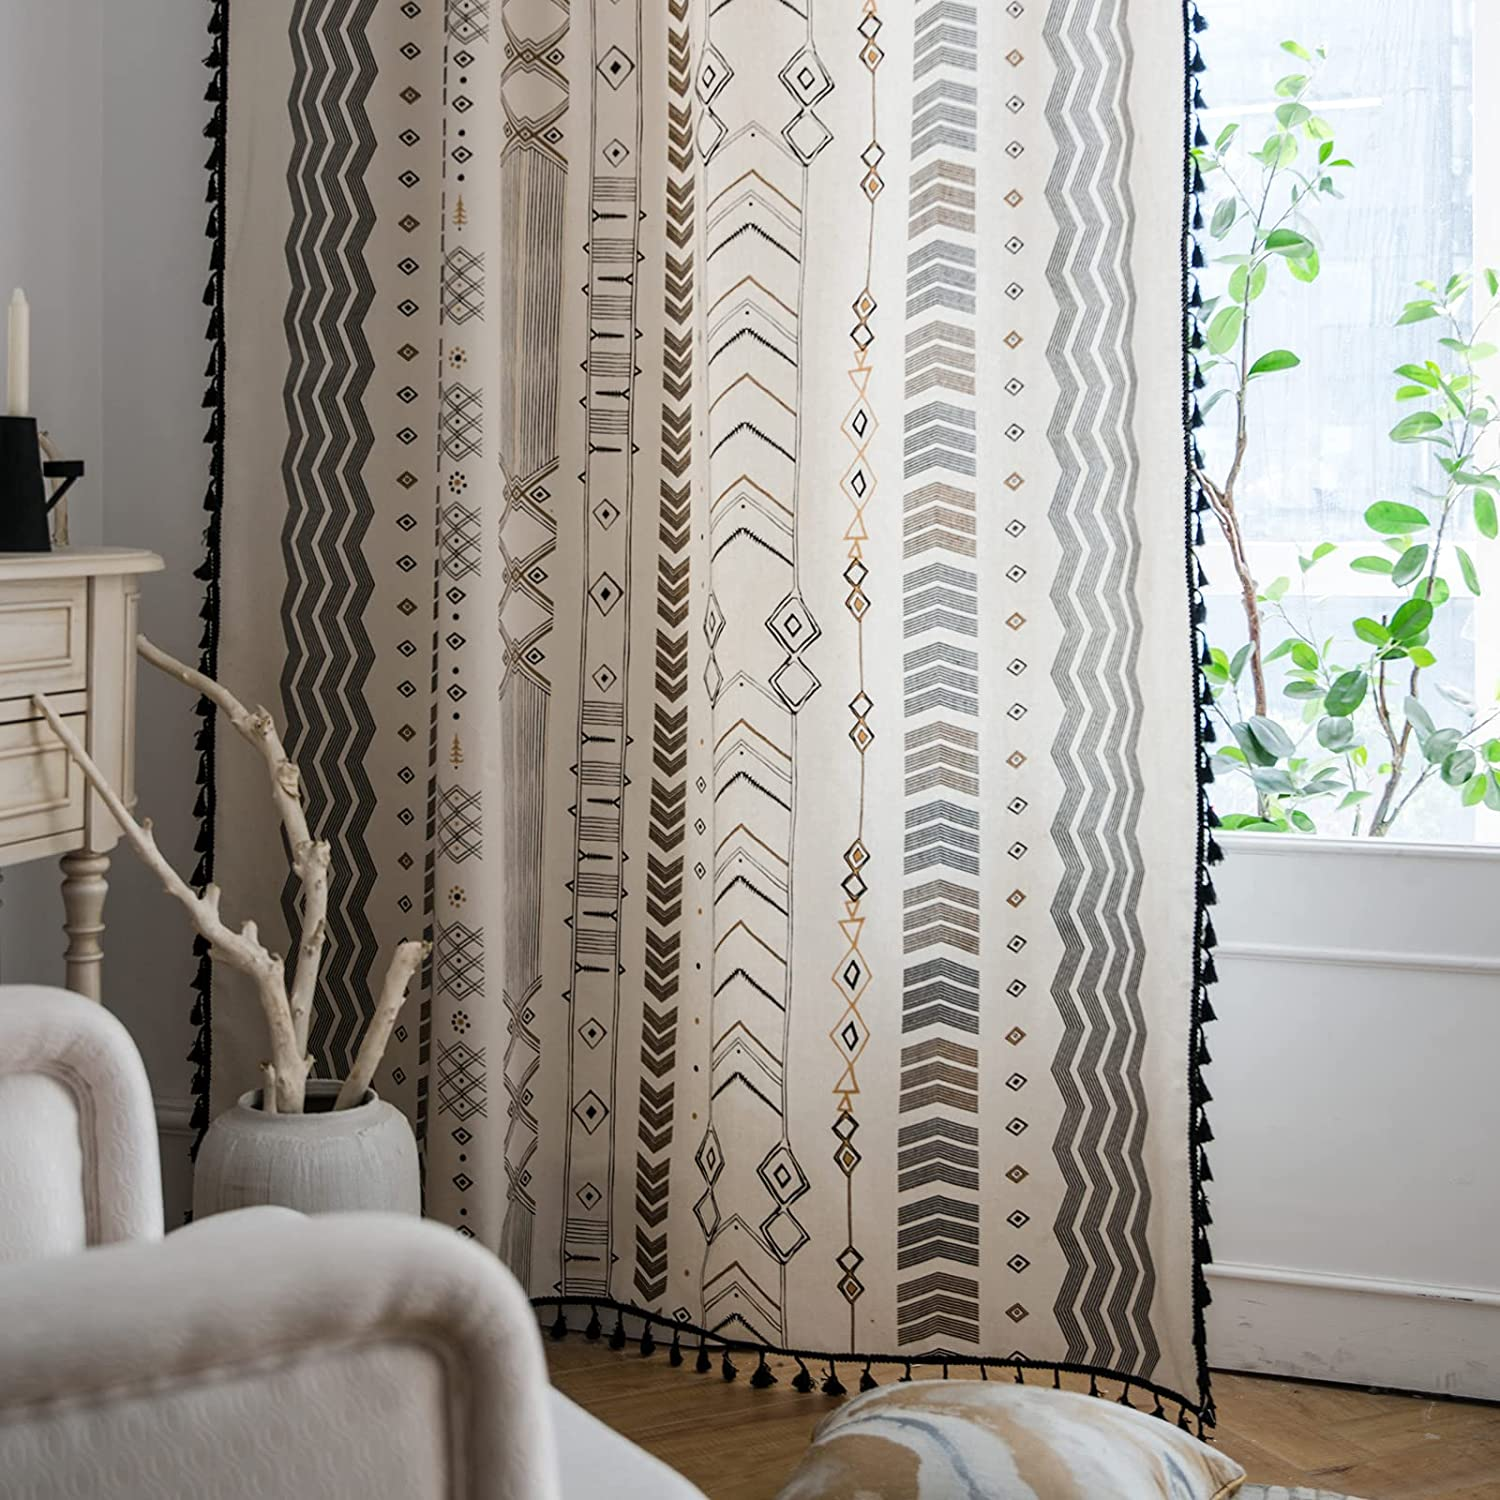 Amazon Com Lahome Boho Living Room Curtains 84 Inch Length 2 Panels Set Tribal Tassel Farmhouse Cotton Linen Curtain Drapes Rod Pocket Semi Blackout Country Style Window Treatment For Bedroom Dining Kitchen Kitchen